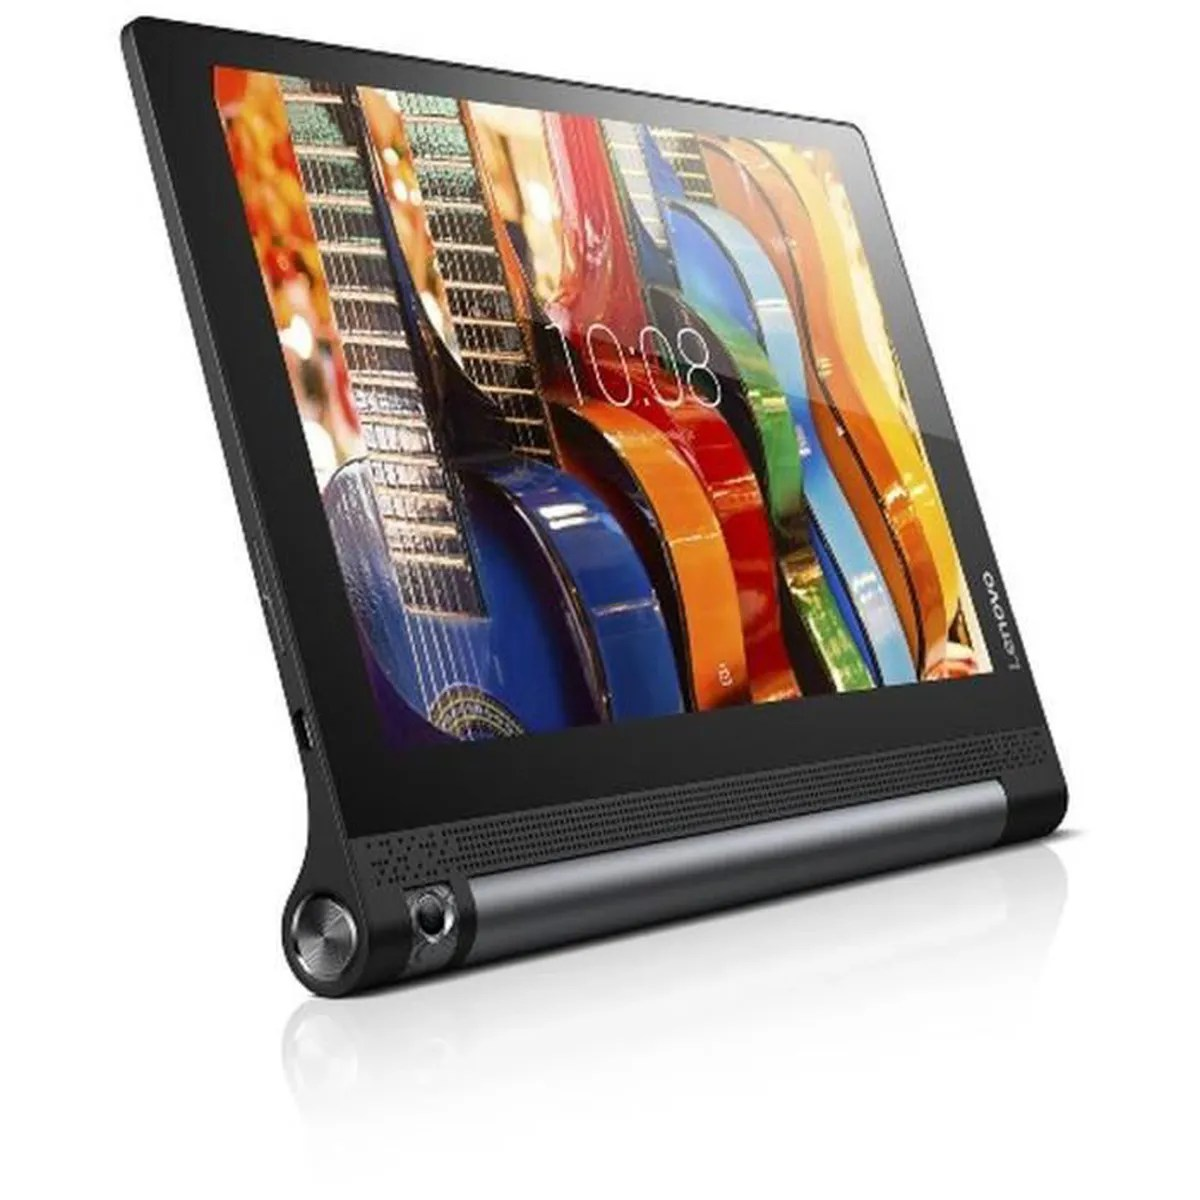 Tablette Tactile 13 Pouces Lenovo Yoga Tablet 310 2565 Cm 101 Pouces Hd Ips Convertible